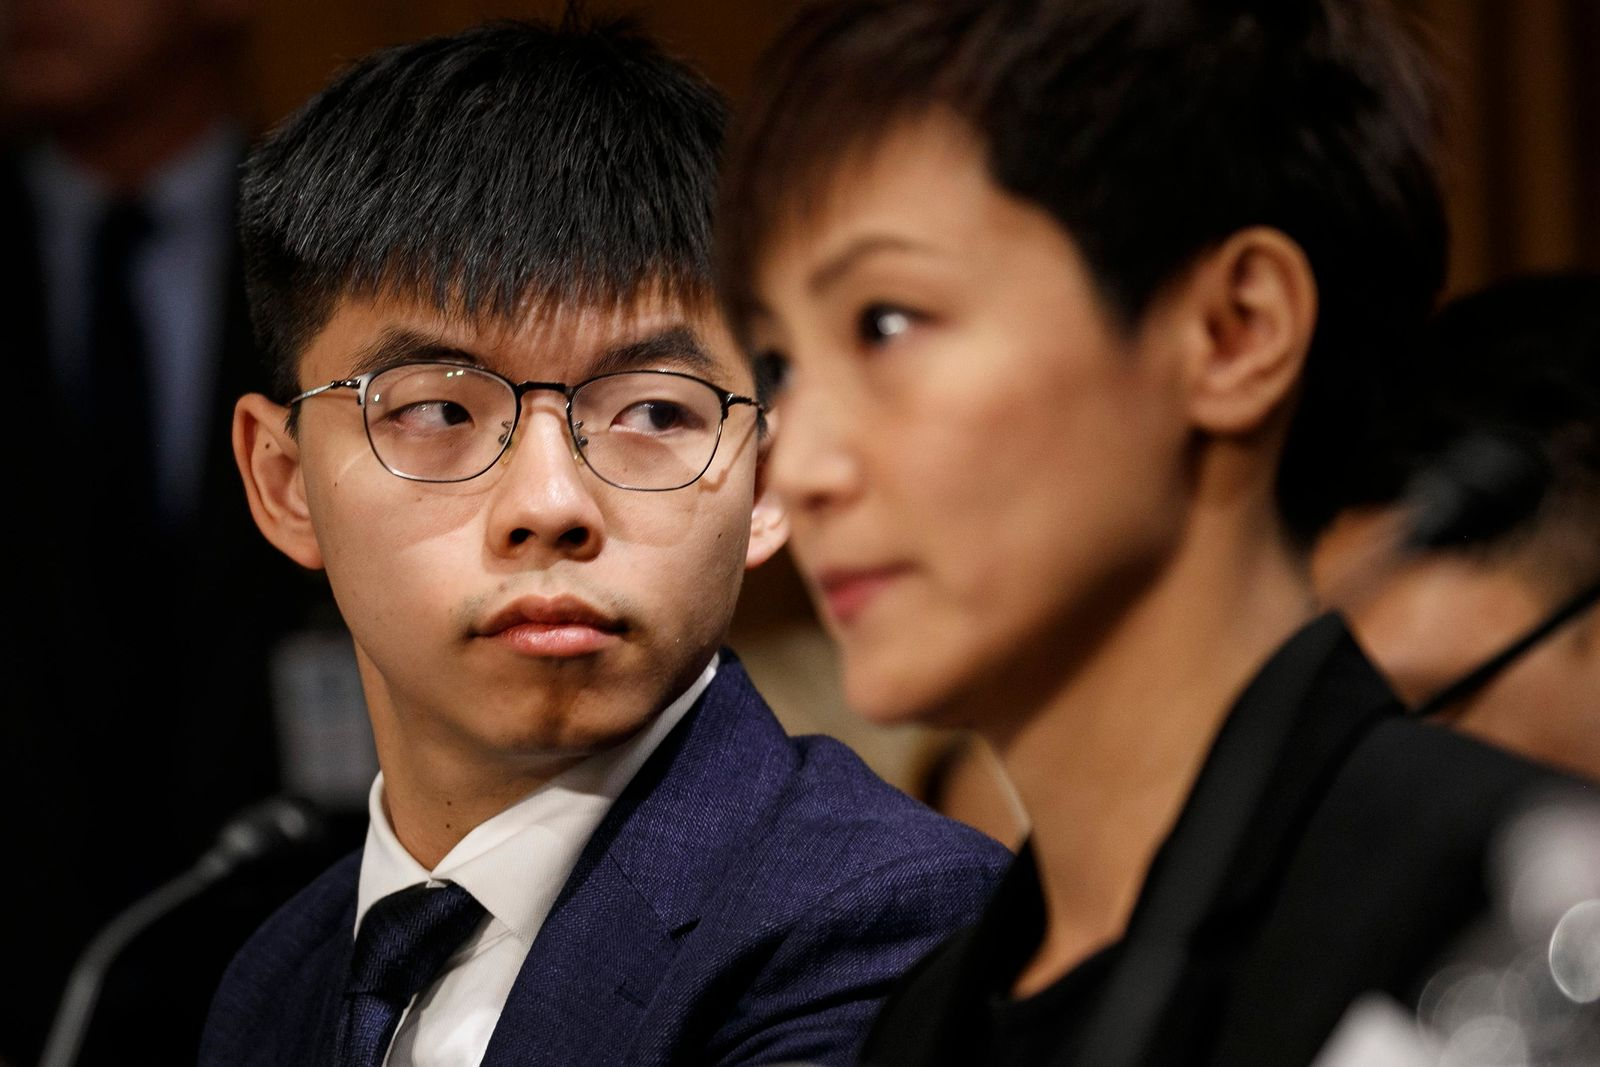 Hong Kong activists Joshua Wong, left, and Denise Ho, attend a Congressional Executive Commission on China (CECC) hearing to examine developments in Hong Kong, Tuesday, Sept. 17, 2019, on Capitol Hill in Washington. (AP Photo/Jacquelyn Martin)